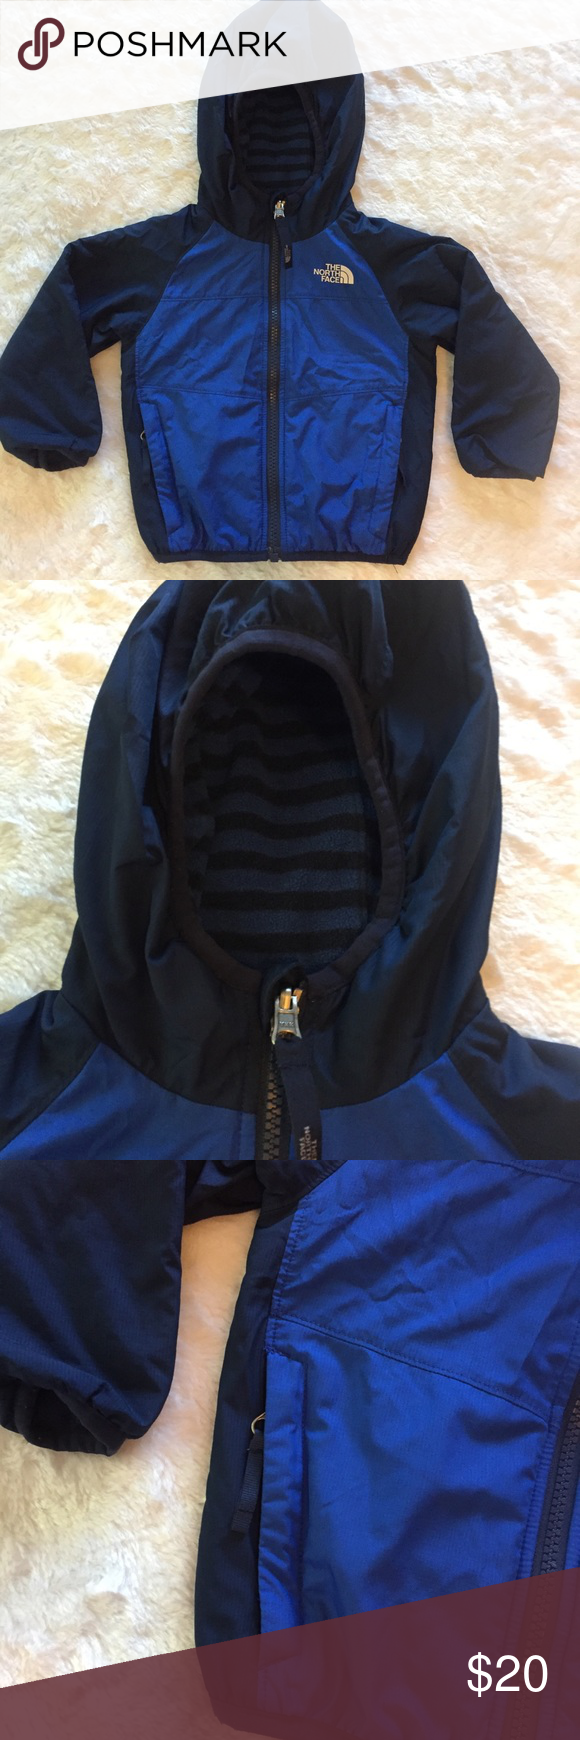 North Face Jacket Sz 2t North Face Jacket The North Face Jackets [ 1740 x 580 Pixel ]